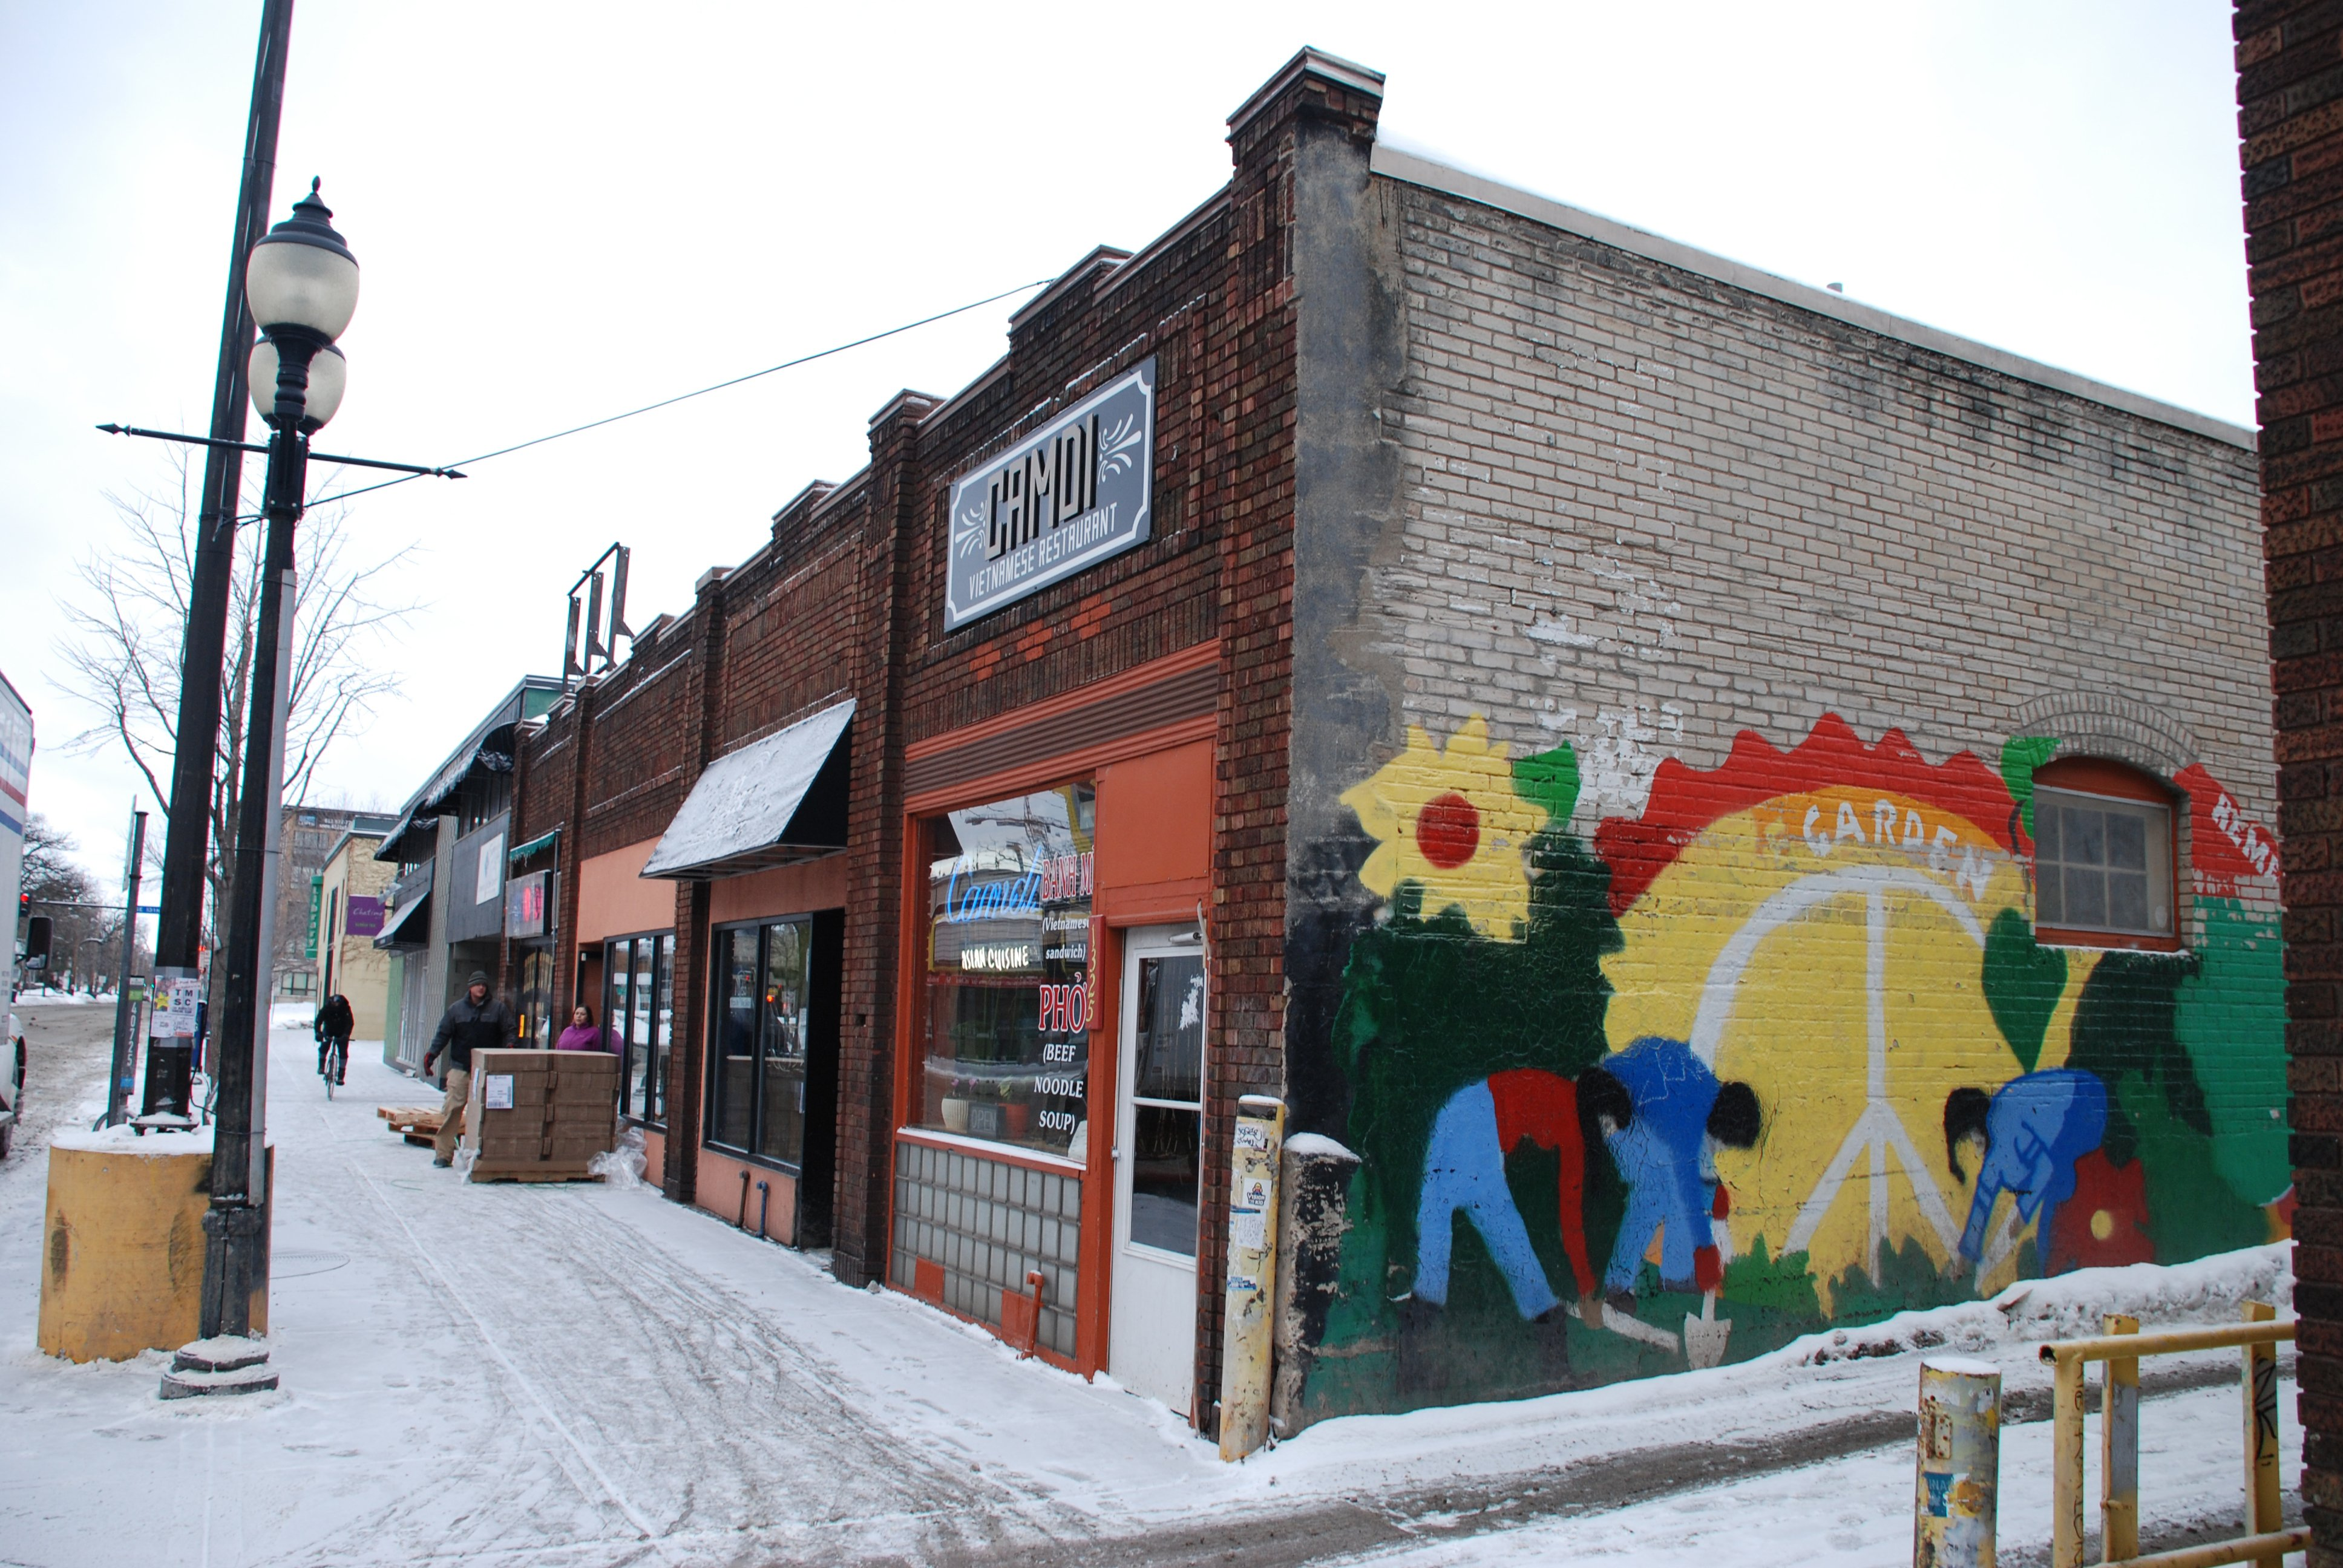 The Minneapolis Historic Preservation Commission unanimously denied Doran Companies' request to demolish this one-story building. The mural celebrates a peace garden planted in 1970 by protestors who prevented the opening of a Red Barn fast-food restaurant in Dinkytown. The Dinkytown Post Office and Hideaway Smoke Shop are on the peace garden/proposed Red Barn site. (Photos by Bill Huntzicker)